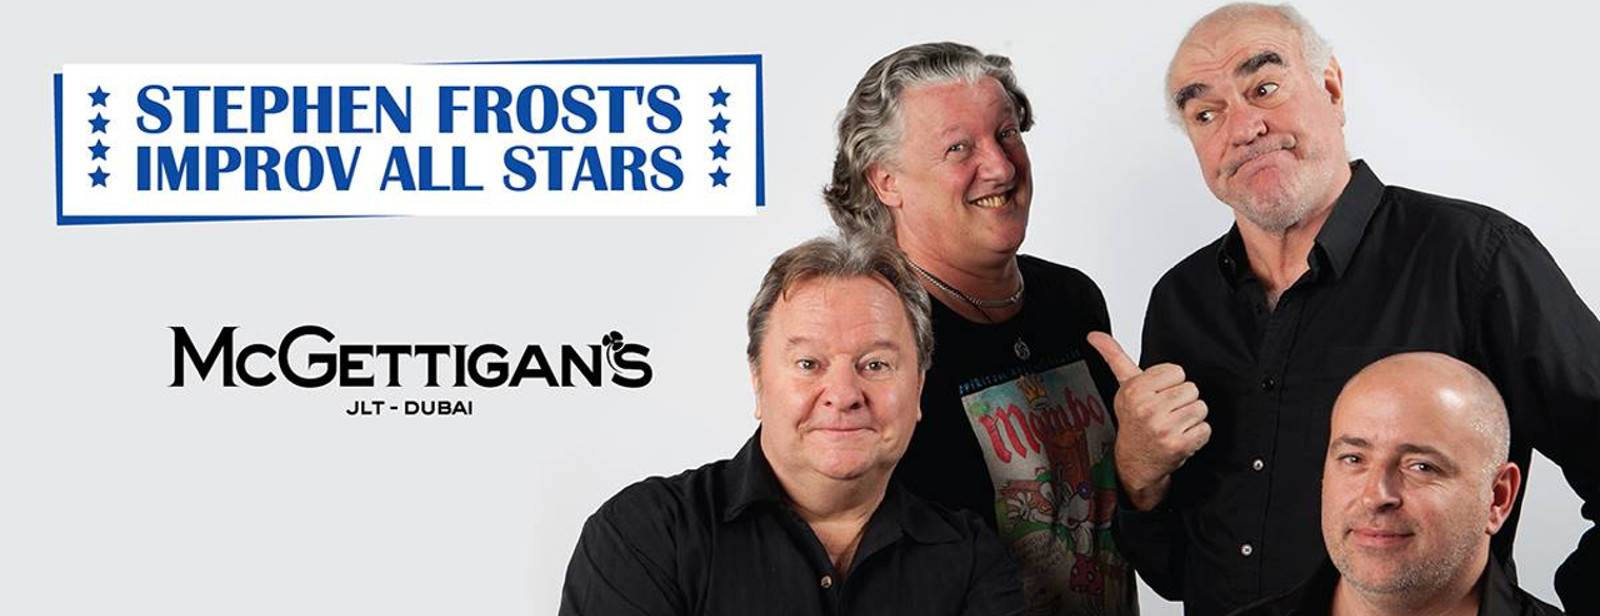 McGettigan's presents Stephen Frost's All Stars Comedy Show